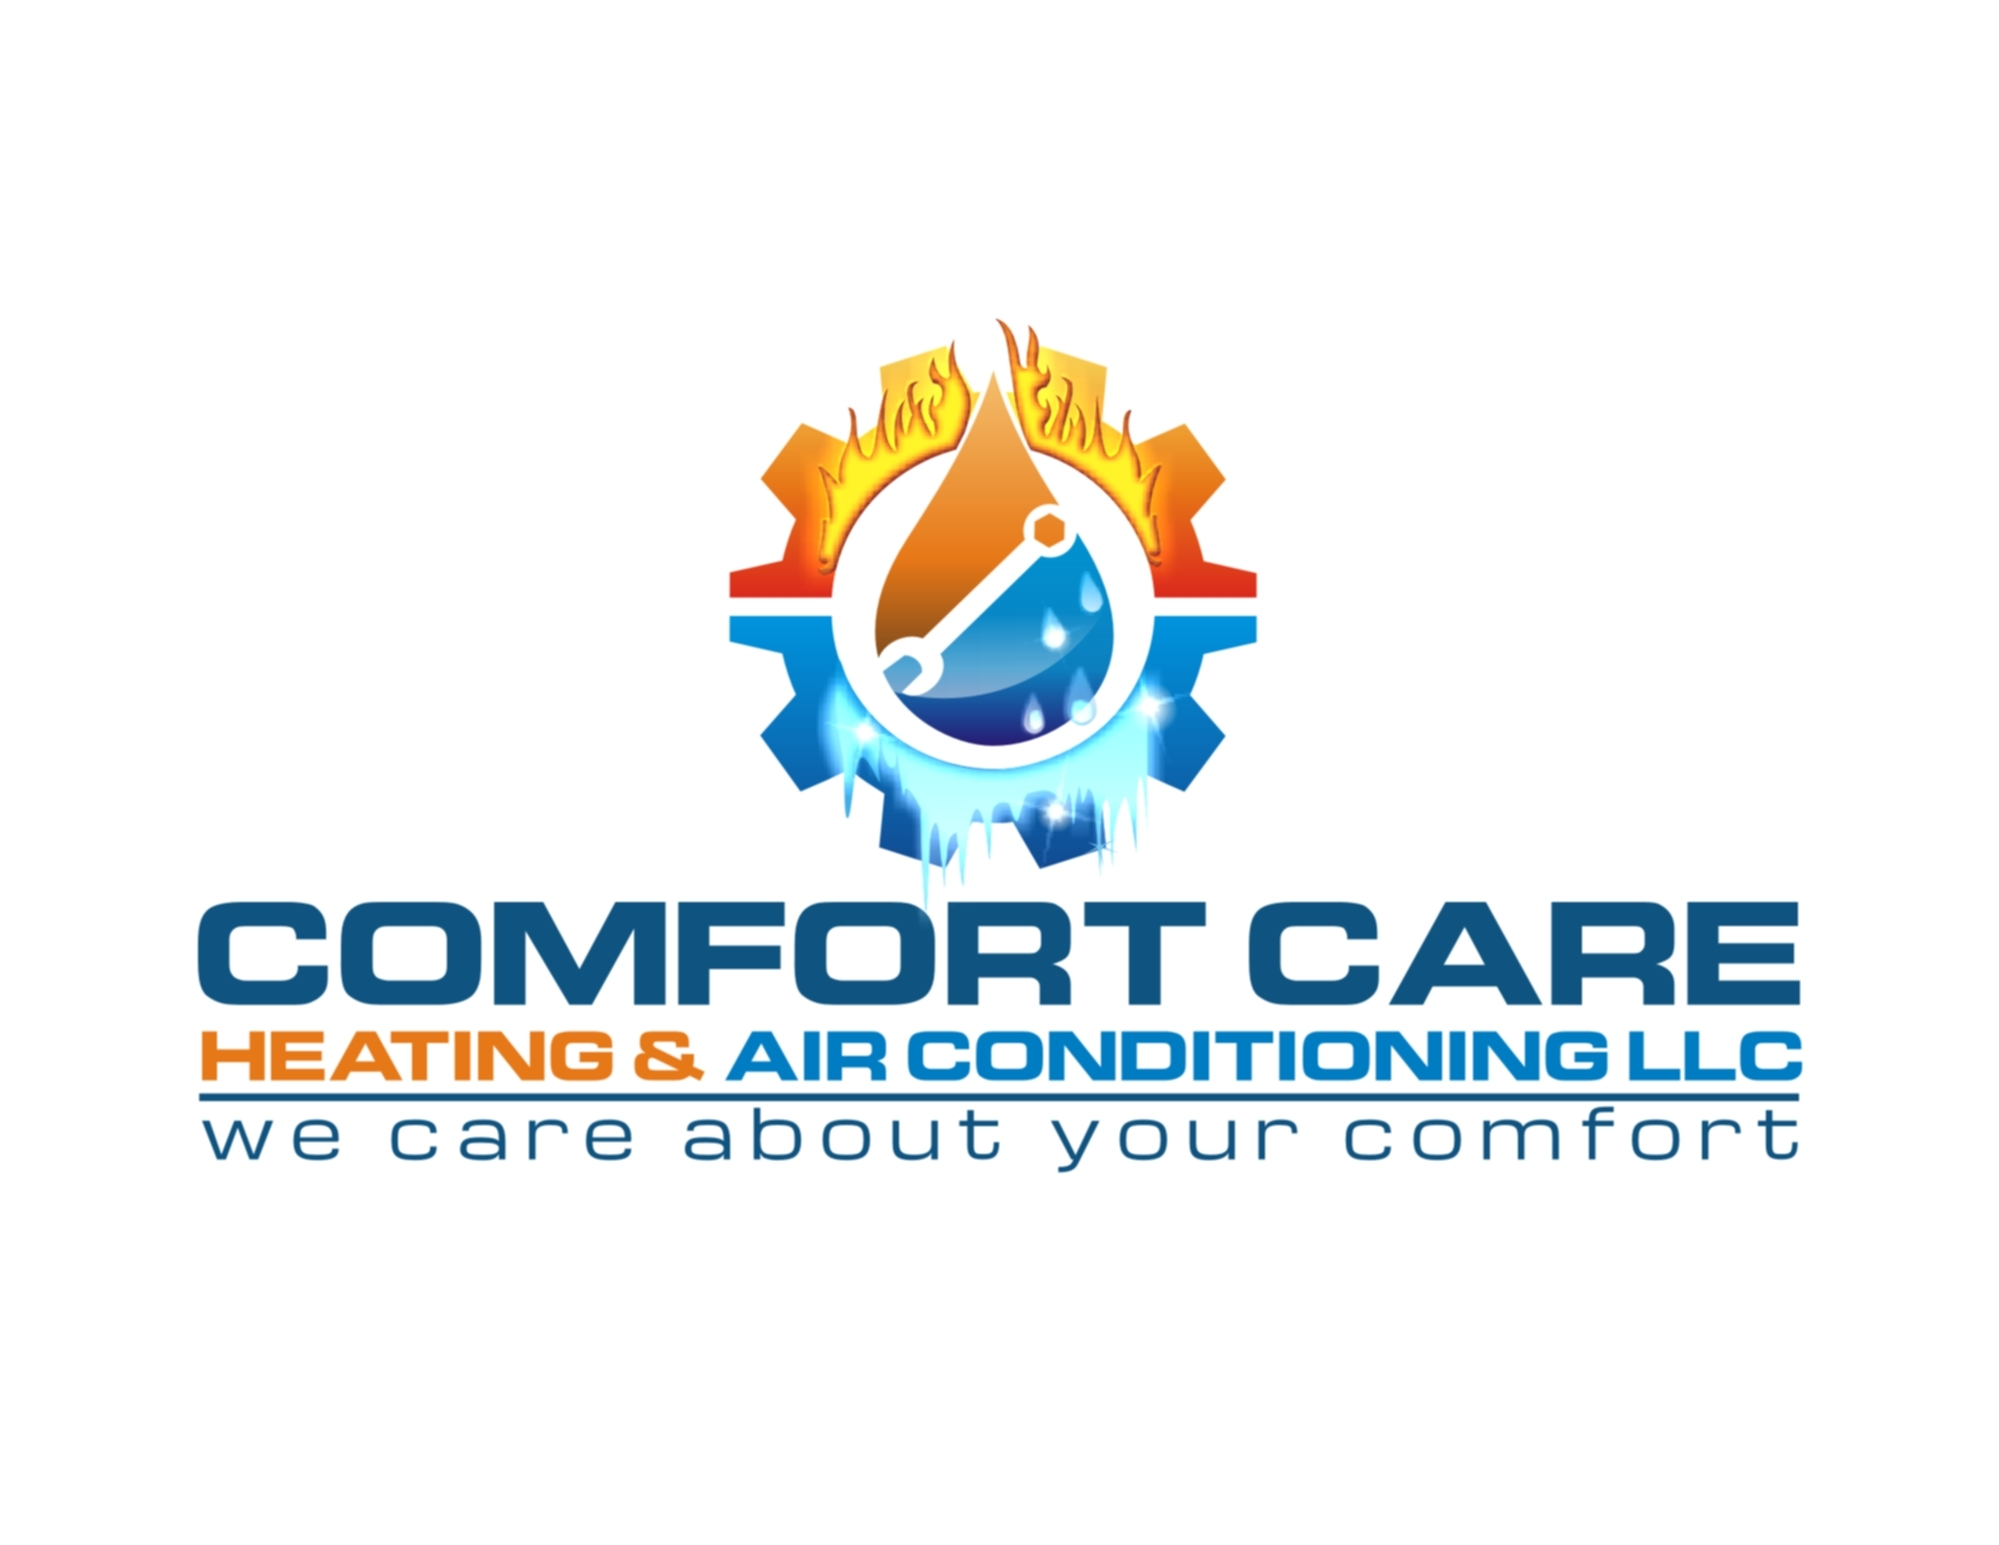 comfort care heating & air conditioning